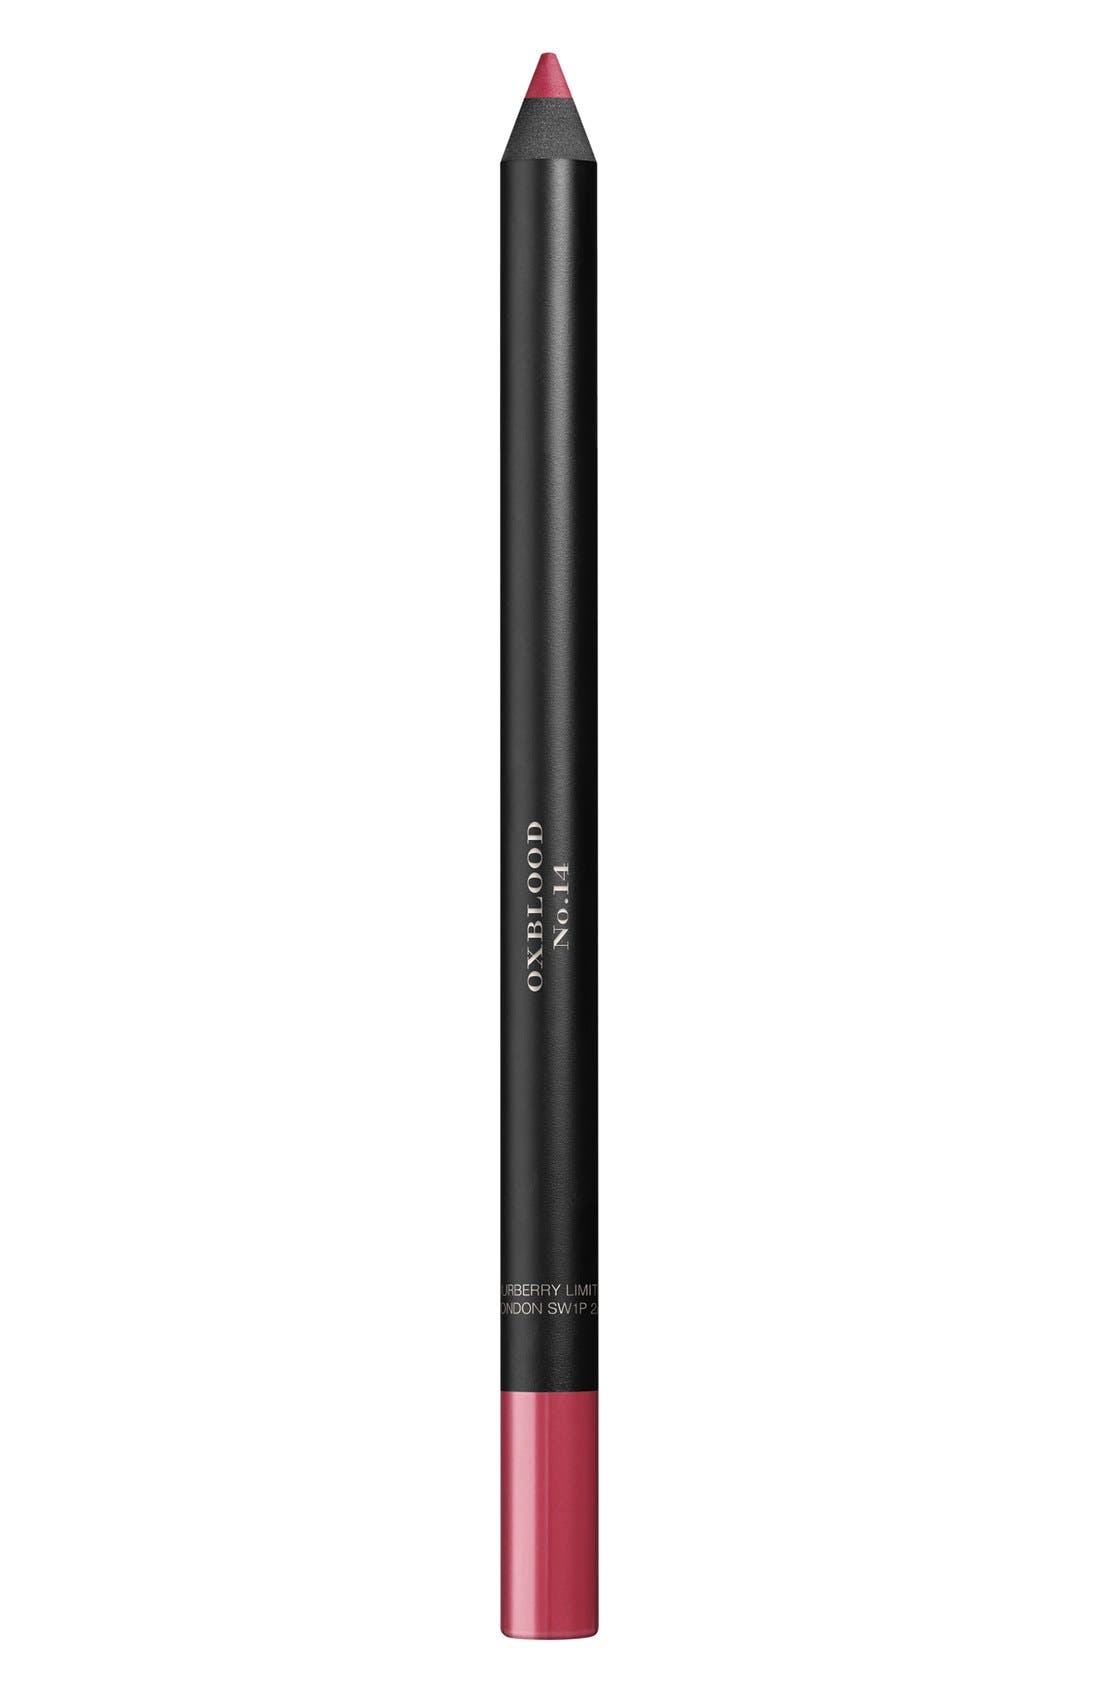 Burberry Beauty Lip Definer